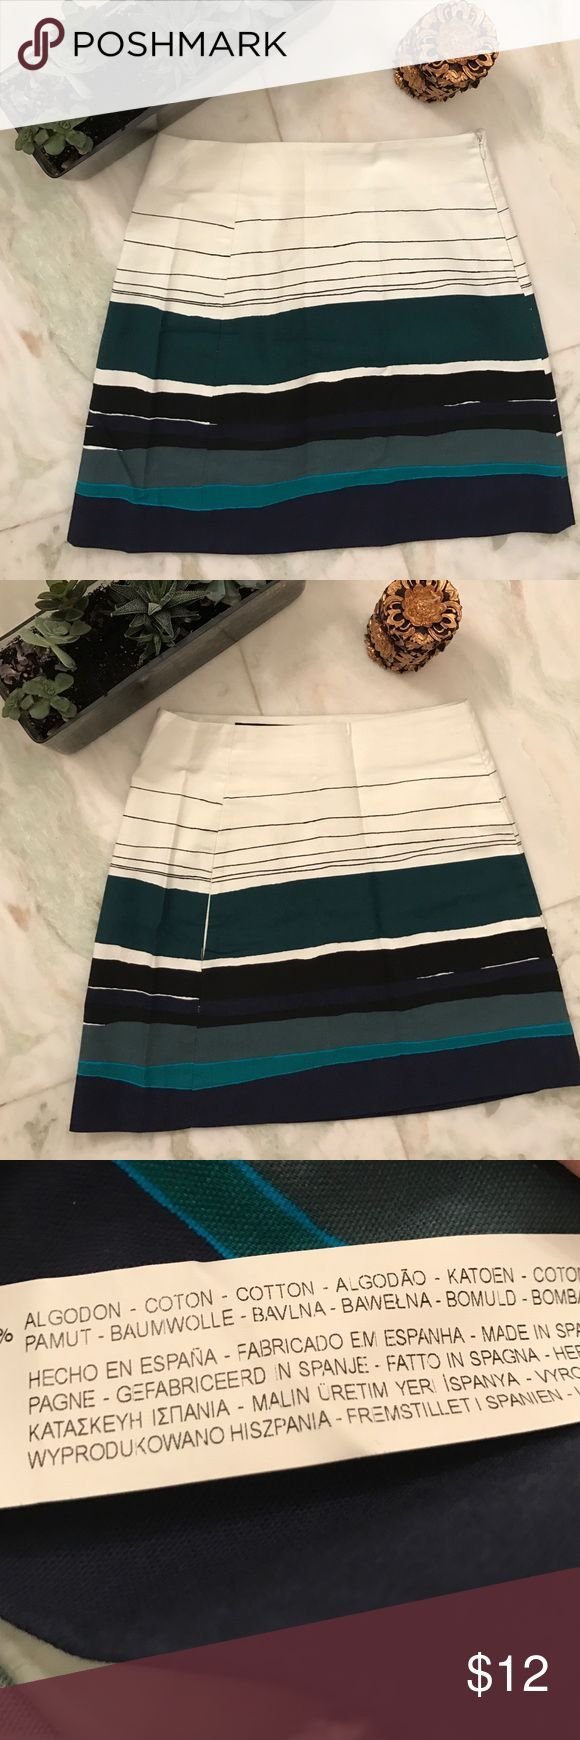 Zara skirt in abstract print Zara skirt in abstract print. Zip is on the side. Measures 16 inches from top to bottom. Open to reasonable offers :) Zara Skirts